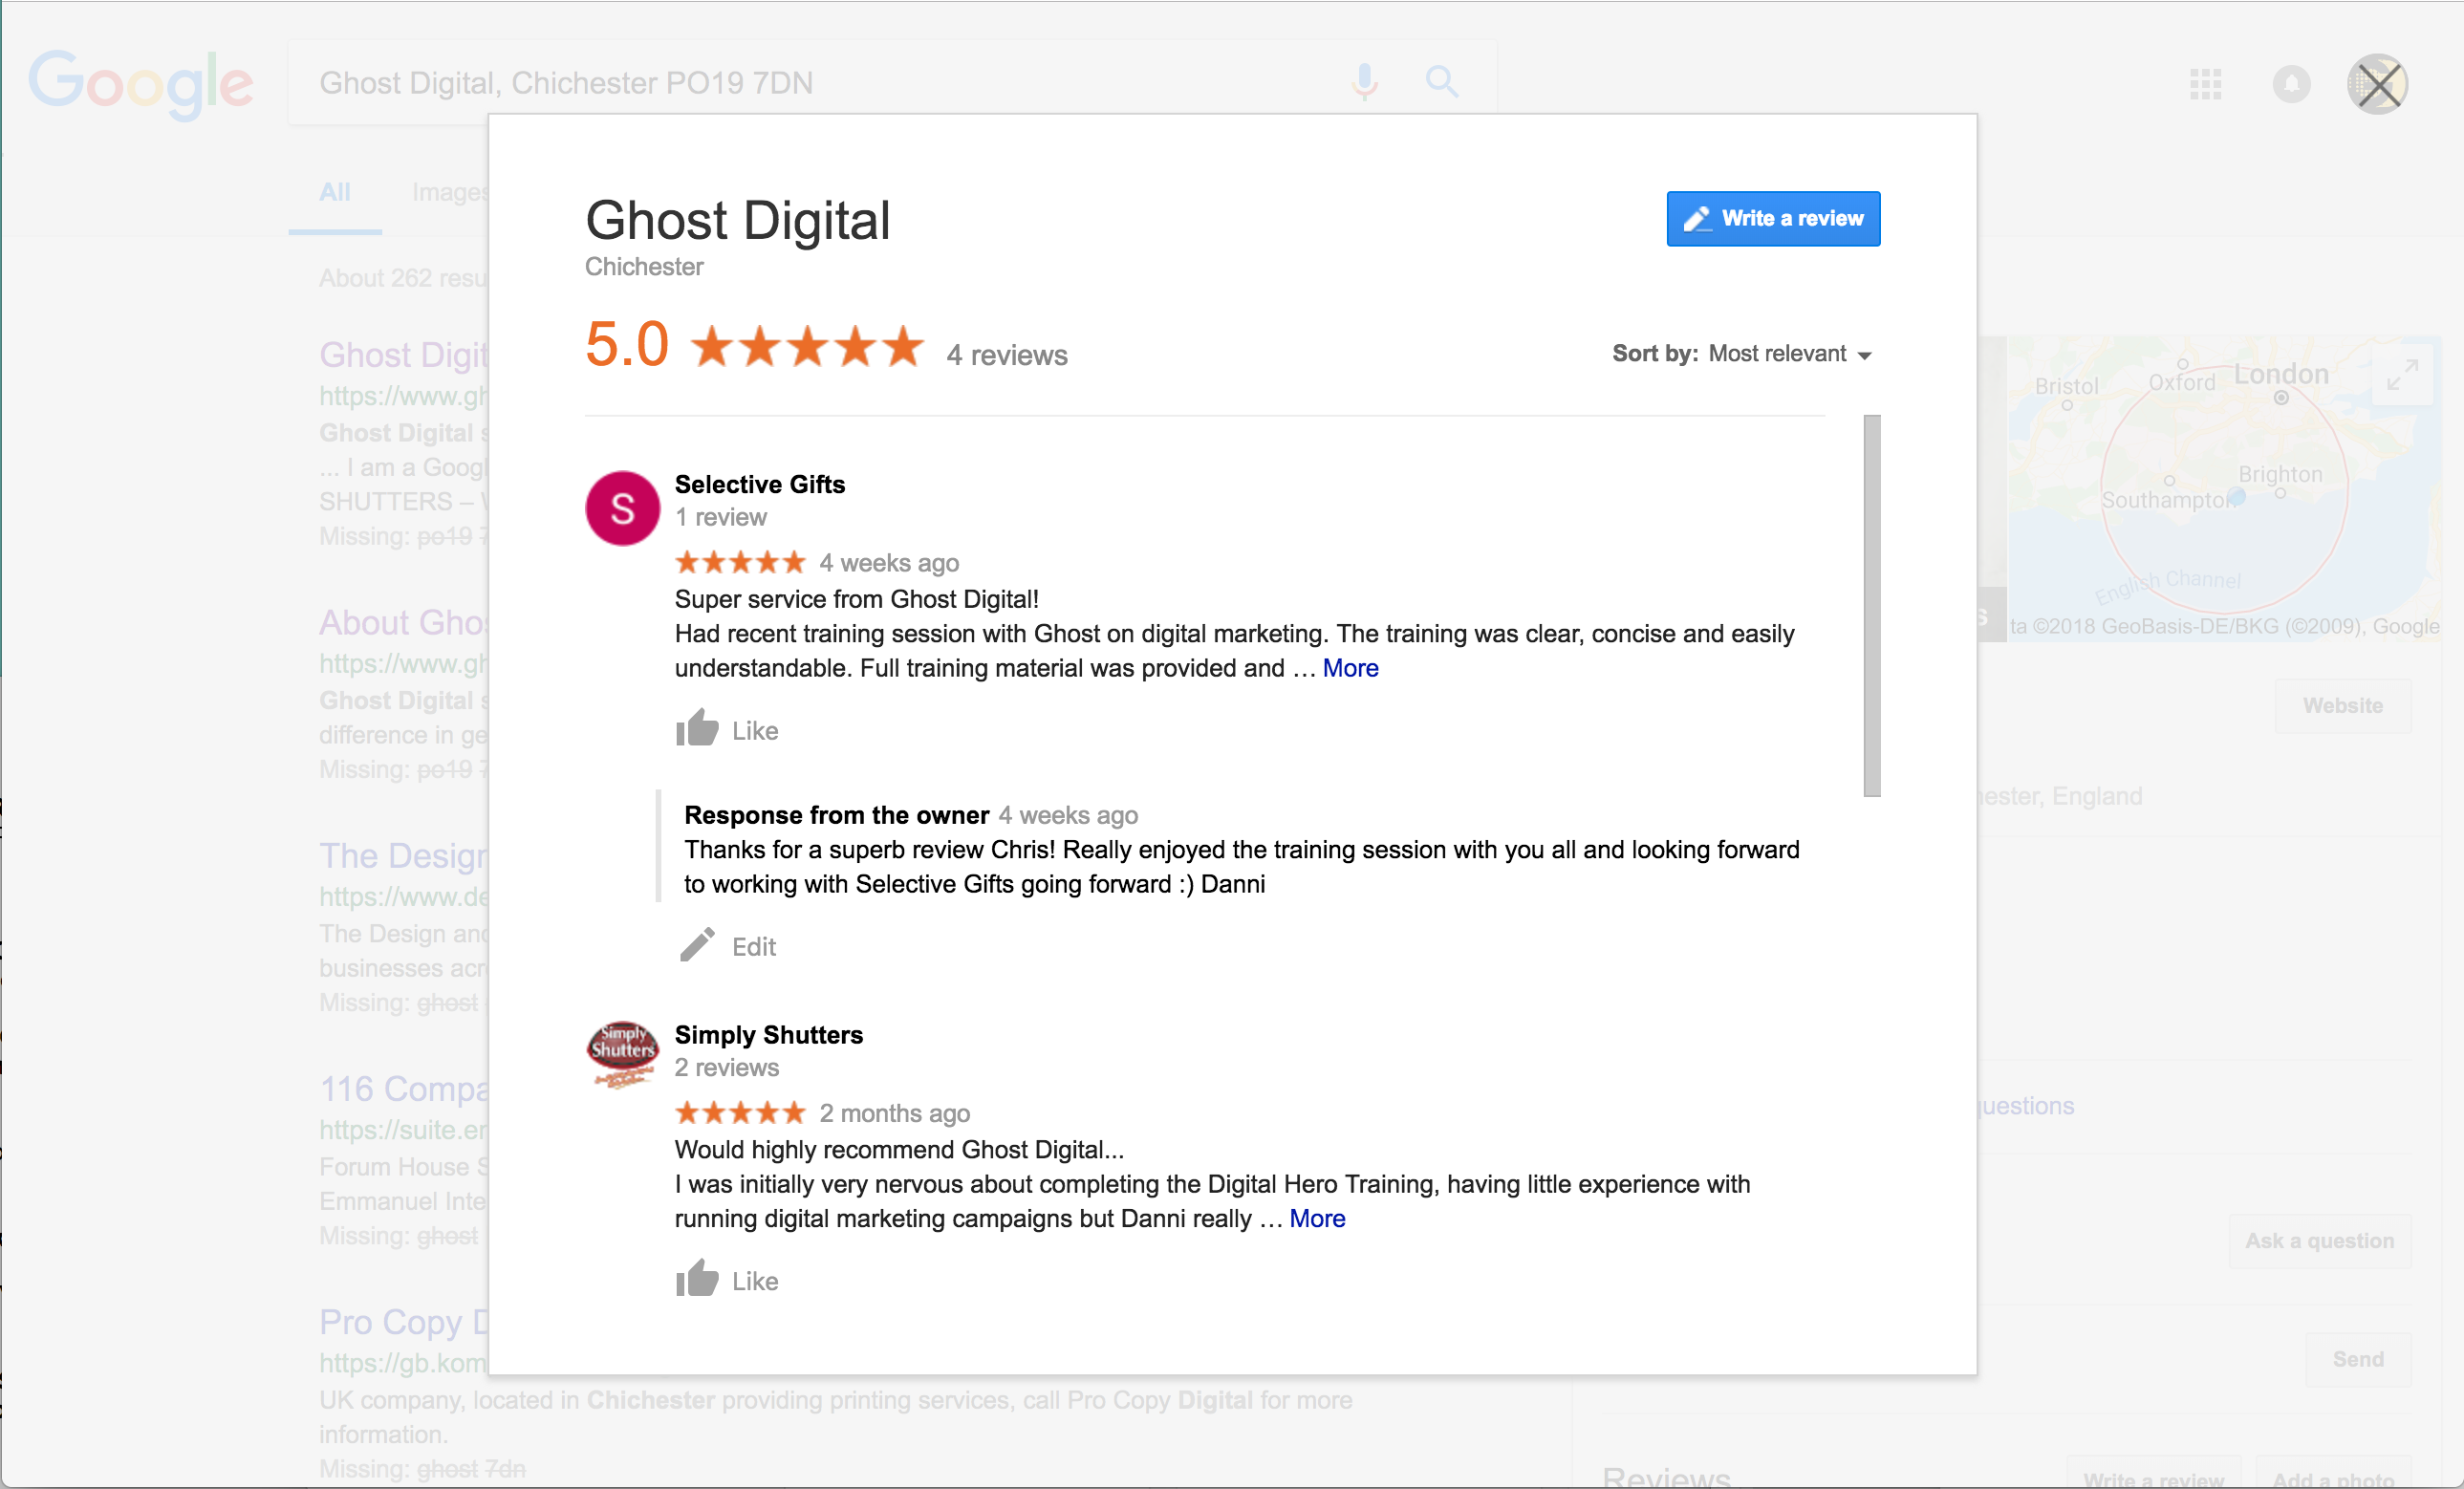 Ghost Digital Google Reviews